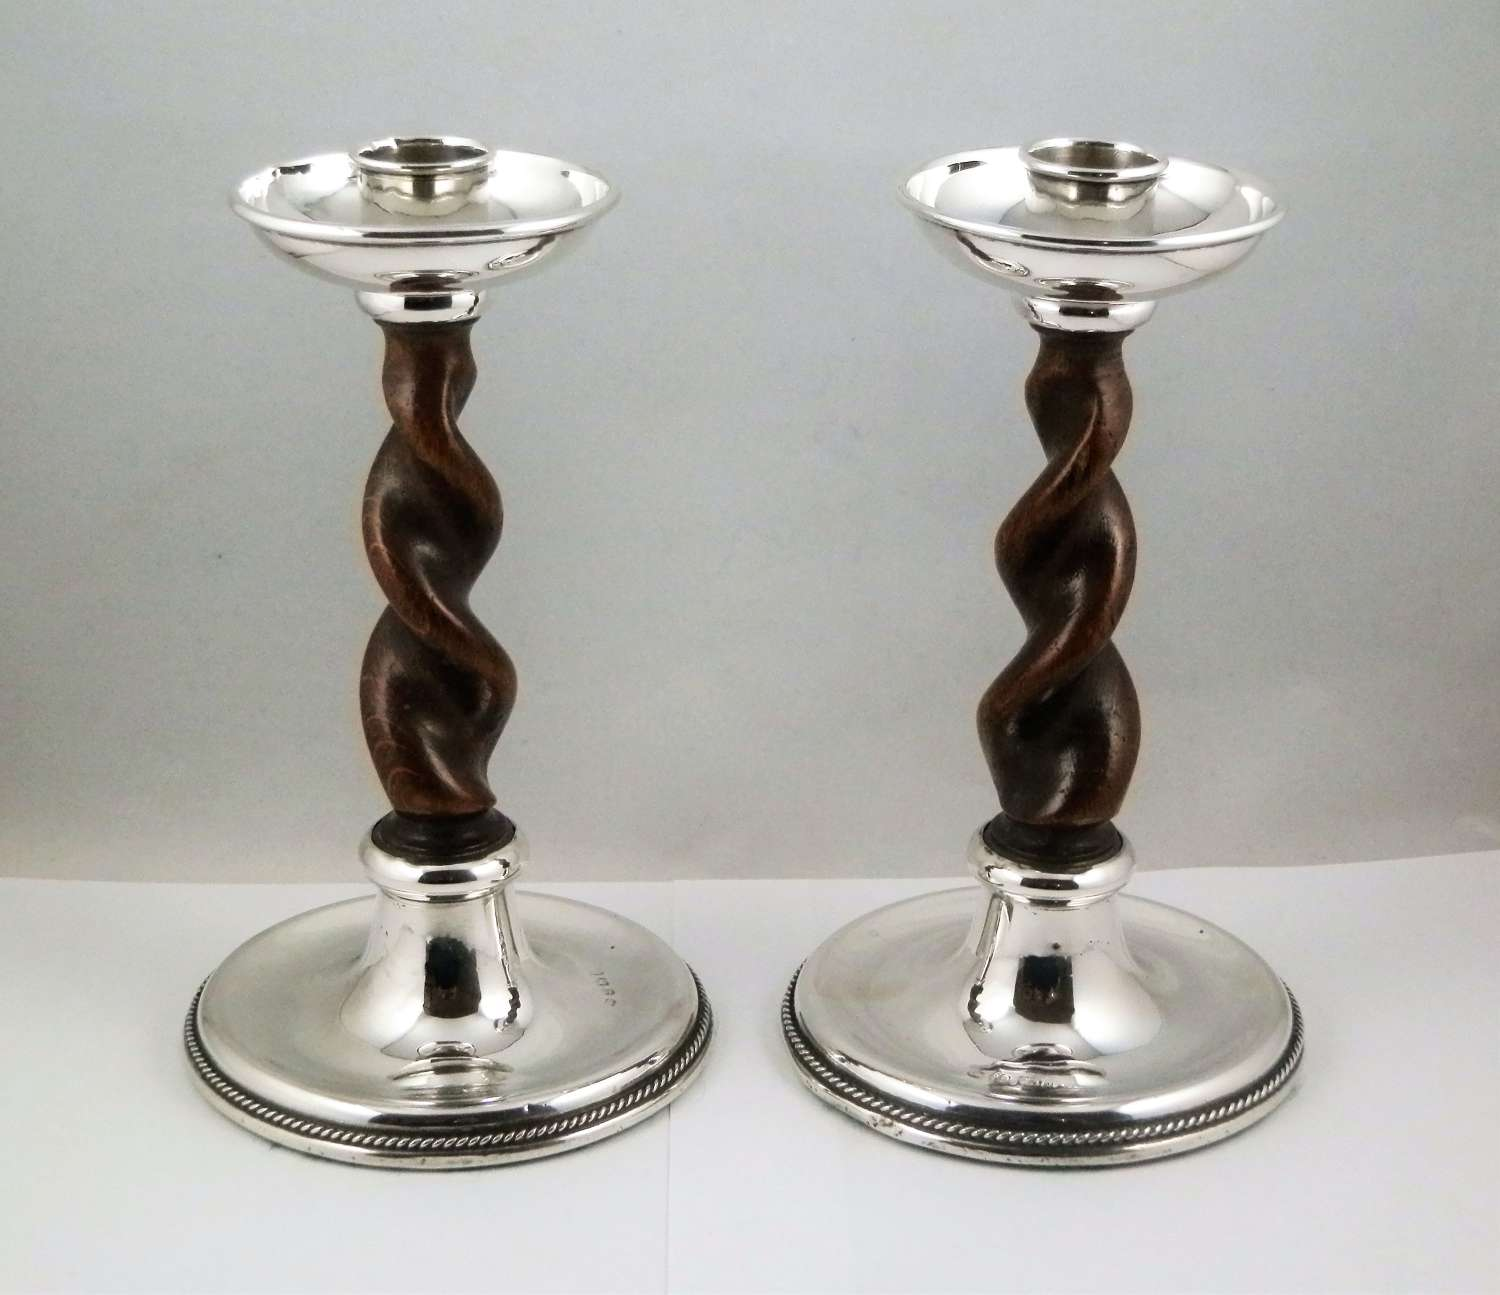 An arts and crafts pair of barley twist silver candlesticks, A. E. Jo